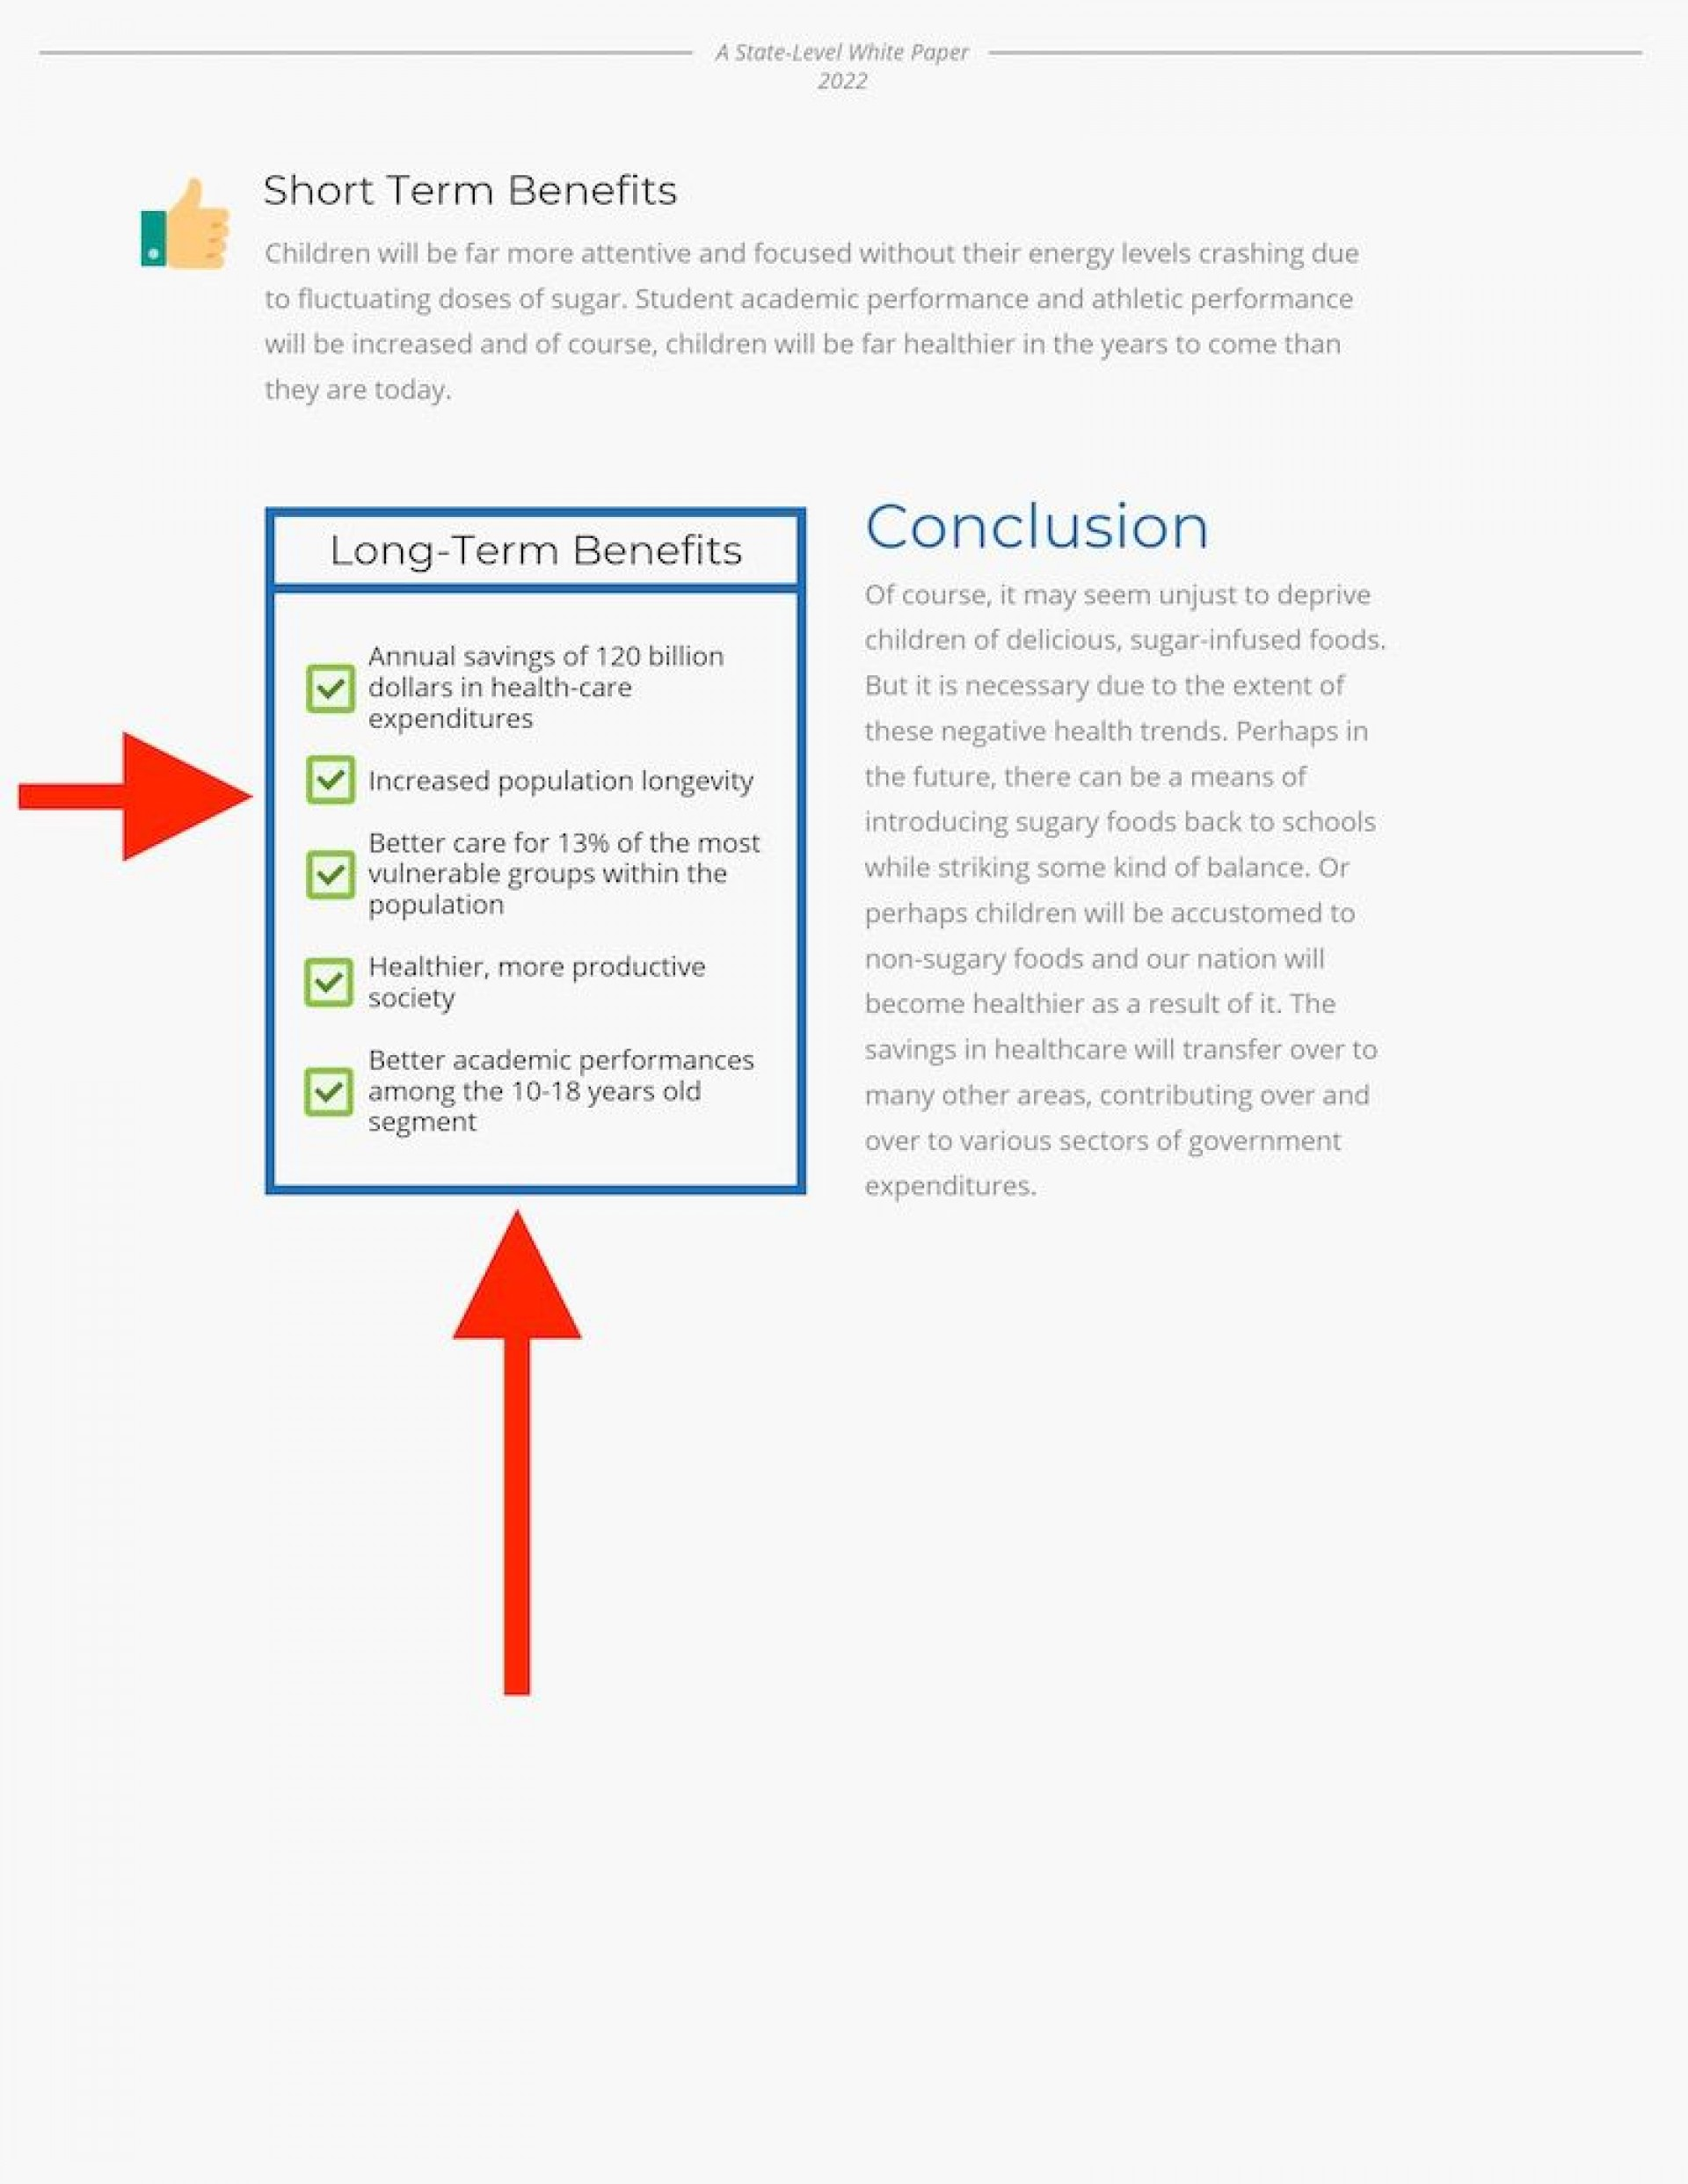 002 Top White Paper Outline Sample Image 1920